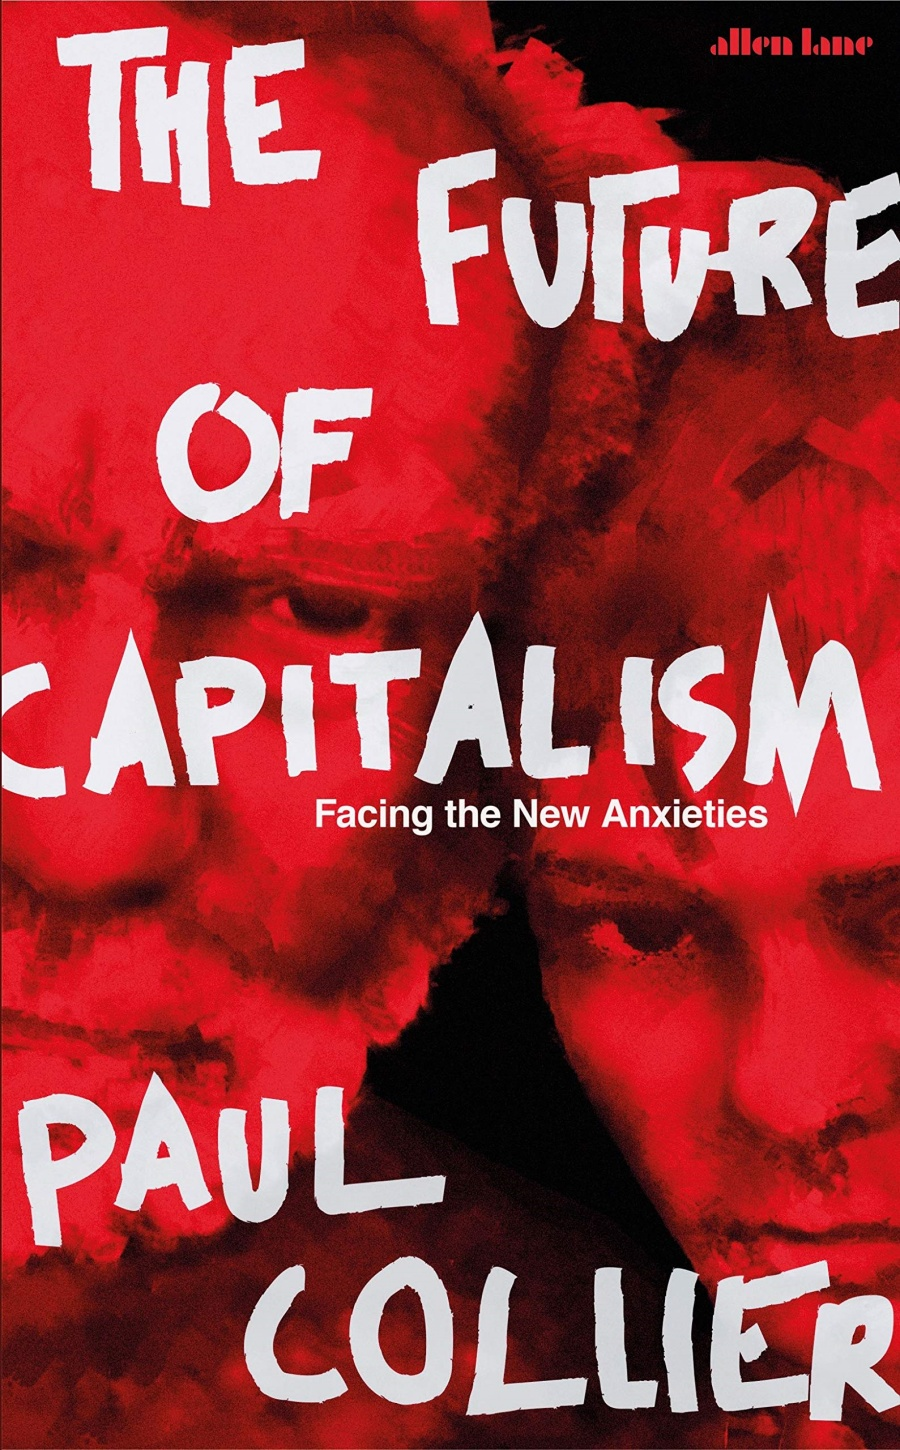 The cover of Professor Collier's book, The Future of Capitalism